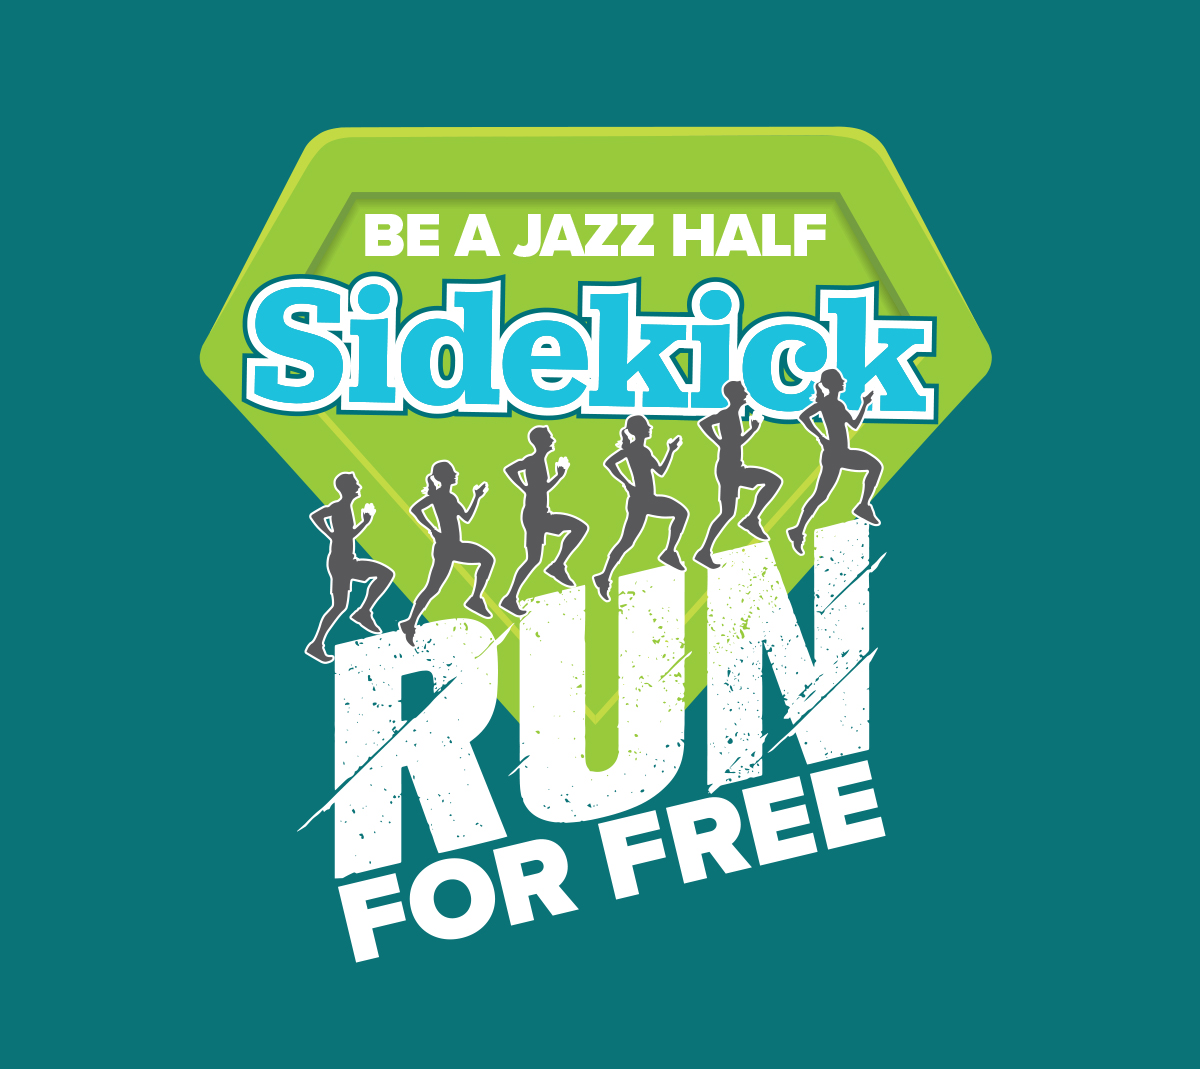 Run for free logo